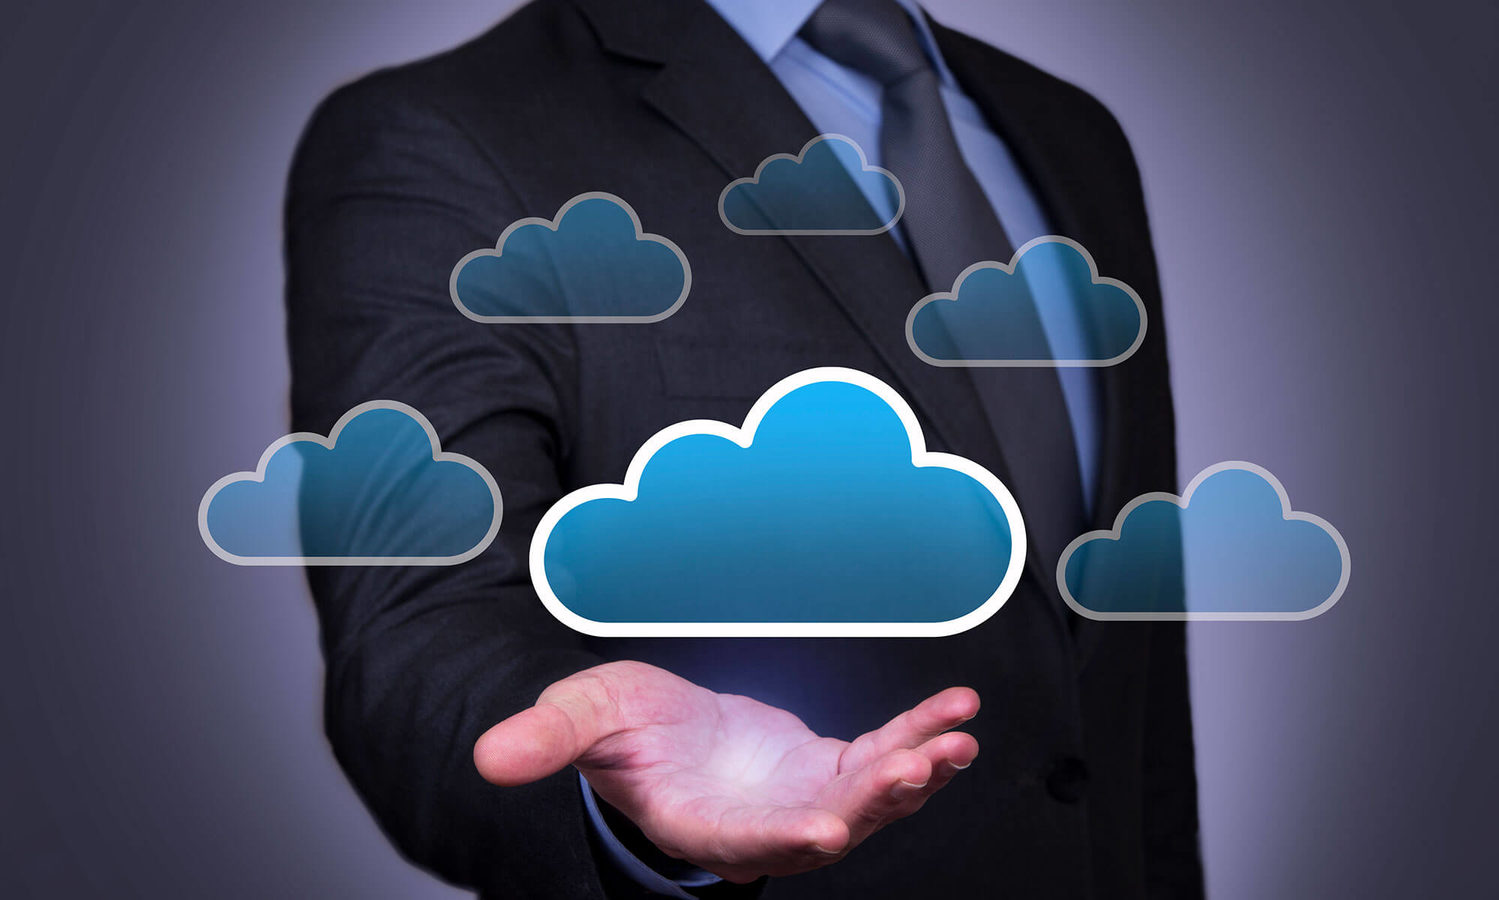 Strategico e resiliente, il cloud riscrive il business